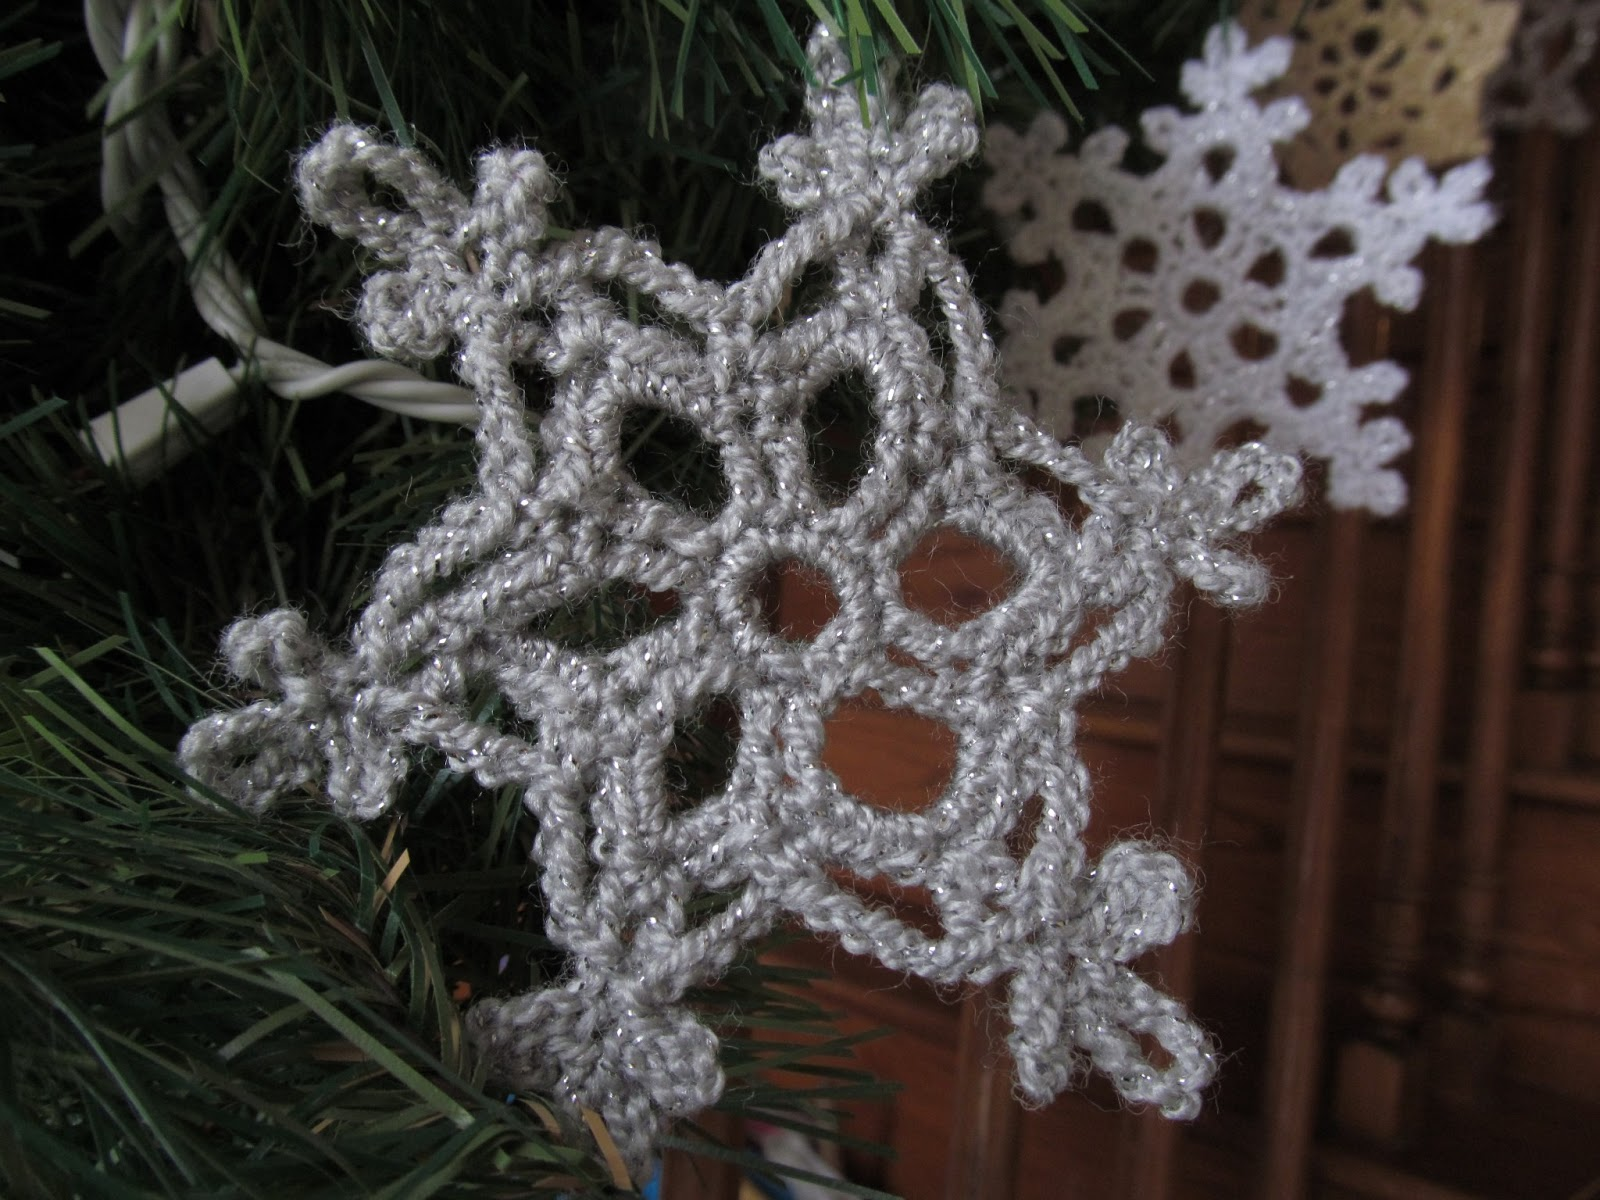 Crochet Knot : And here are some snowflakes I crocheted around Christmas. These ...